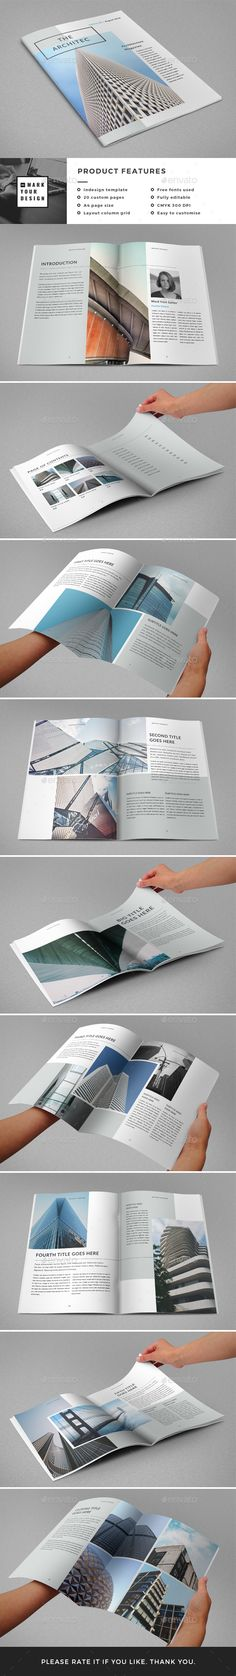 Architecture Magazine / Catalog Template InDesign INDD. Download here: https://graphicriver.net/item/architecture-magazine-catalog/17506135?ref=ksioks